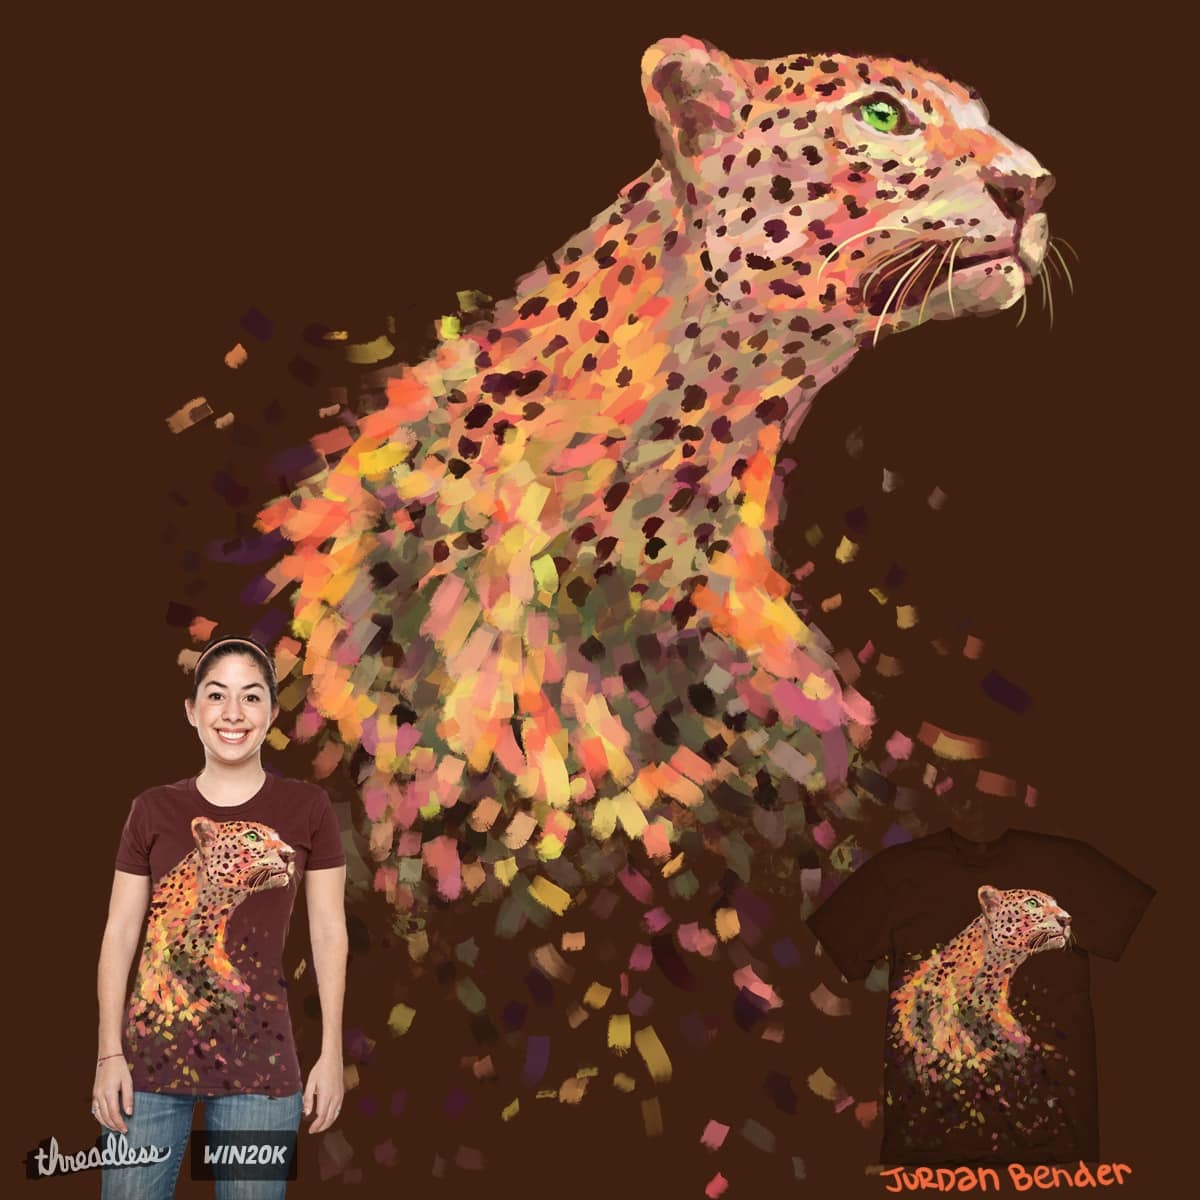 Fragments by Jordan_Bender on Threadless